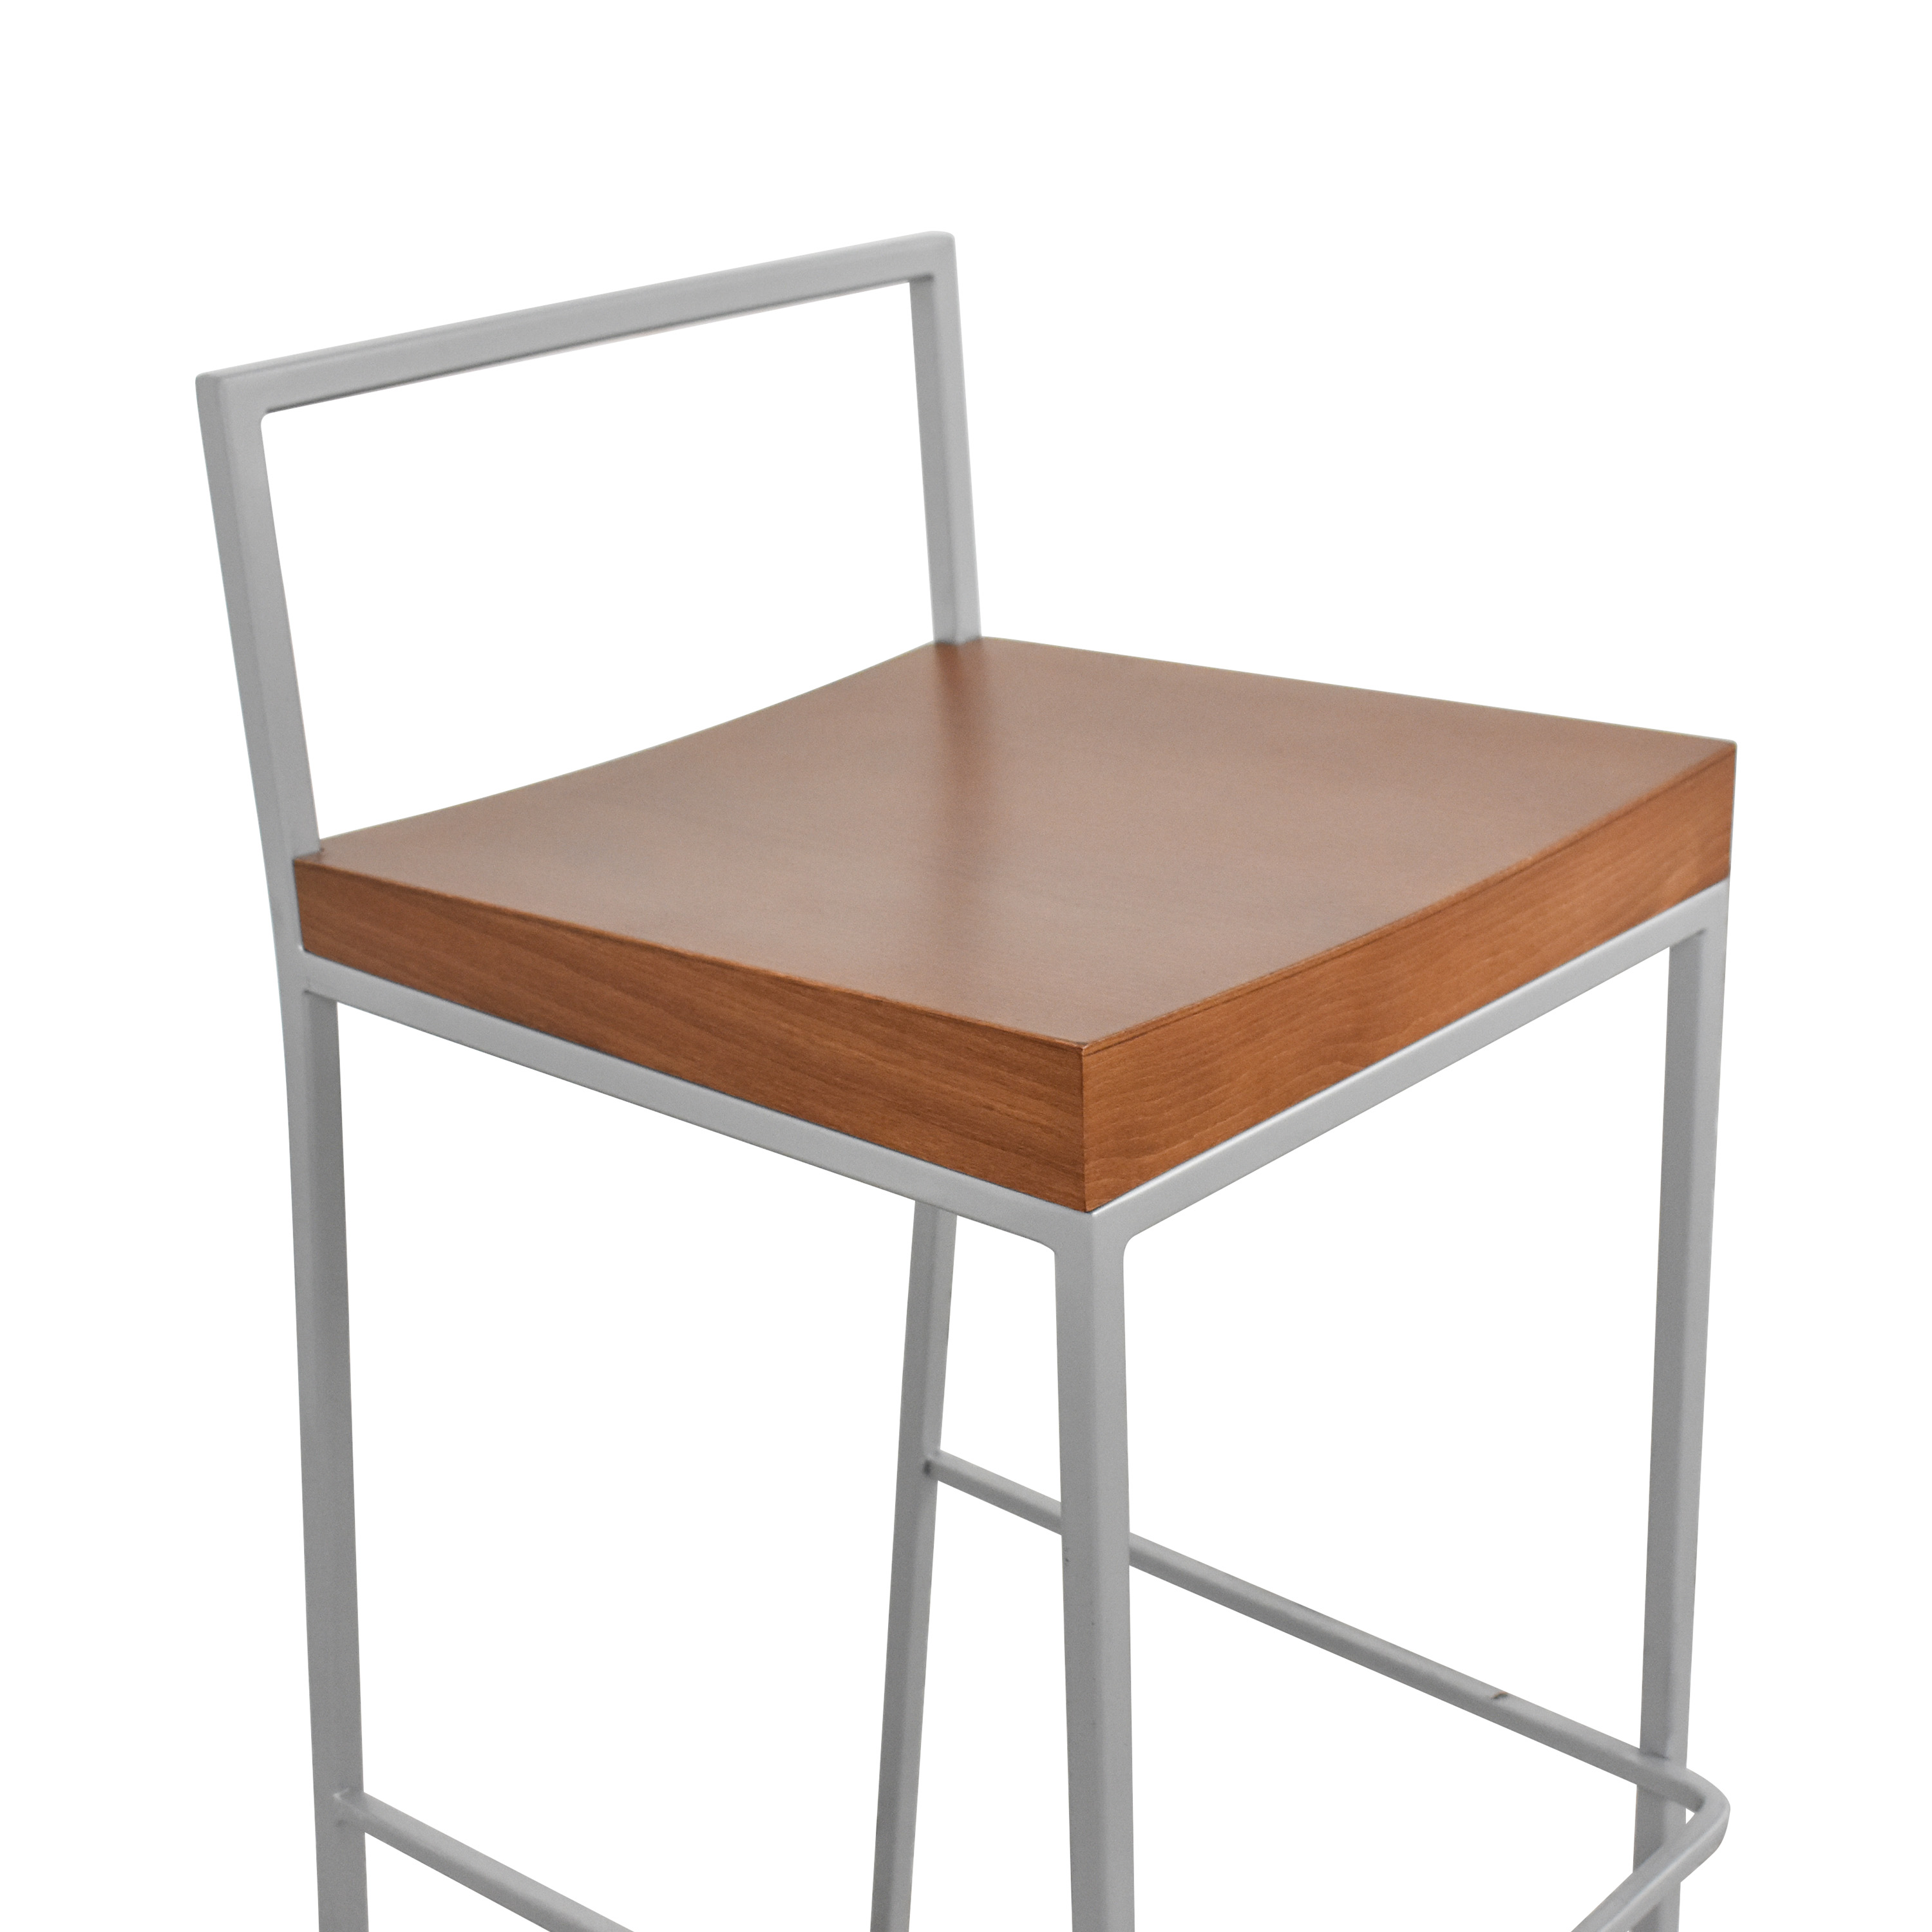 Bross Master Contemporary Bar Stool / Chairs